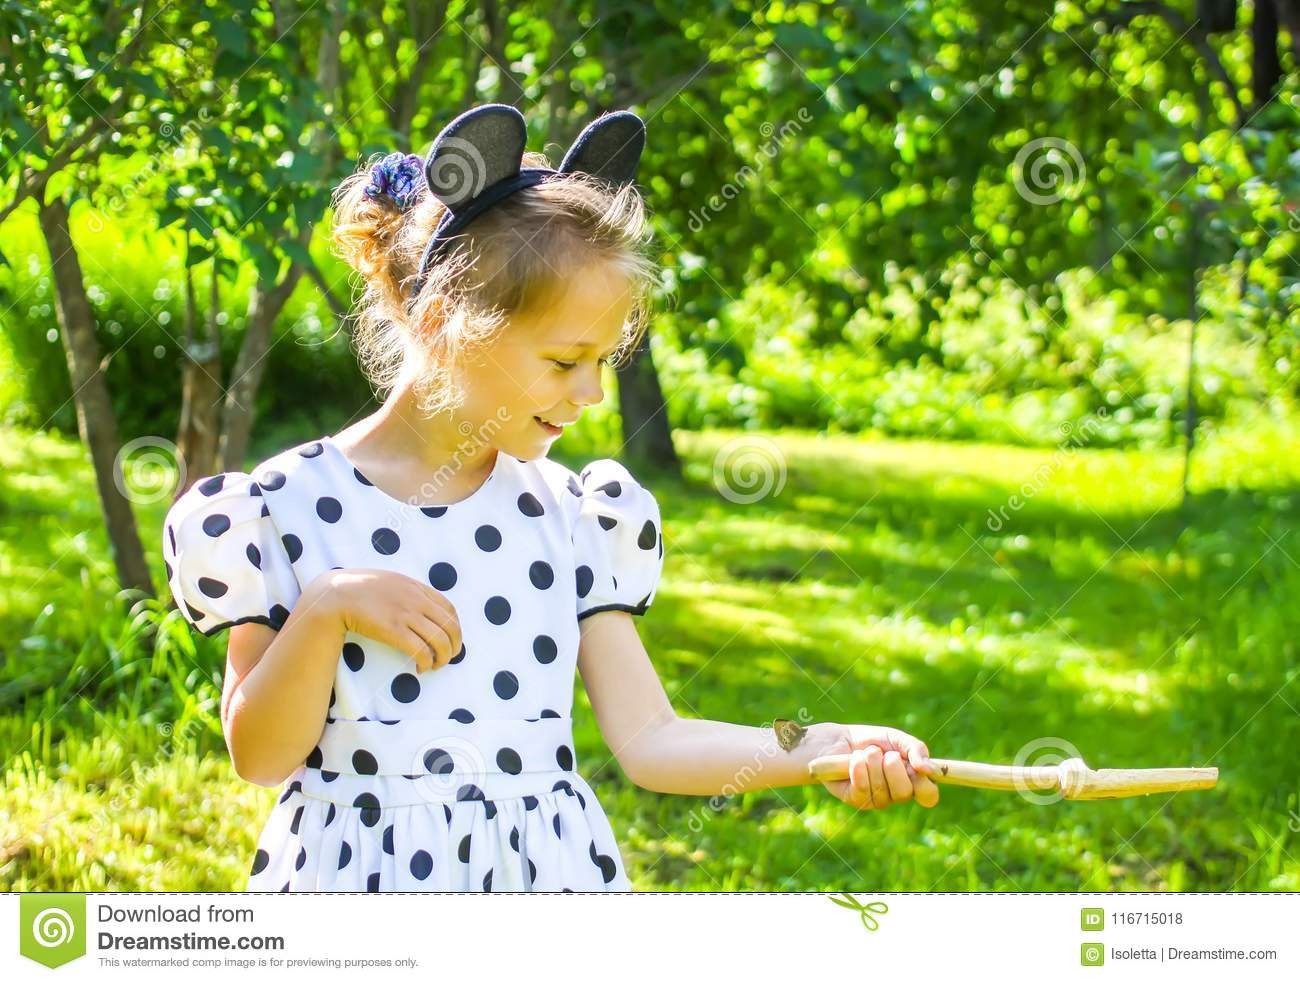 Little girl in summer park with small butterfly sitting on her hand